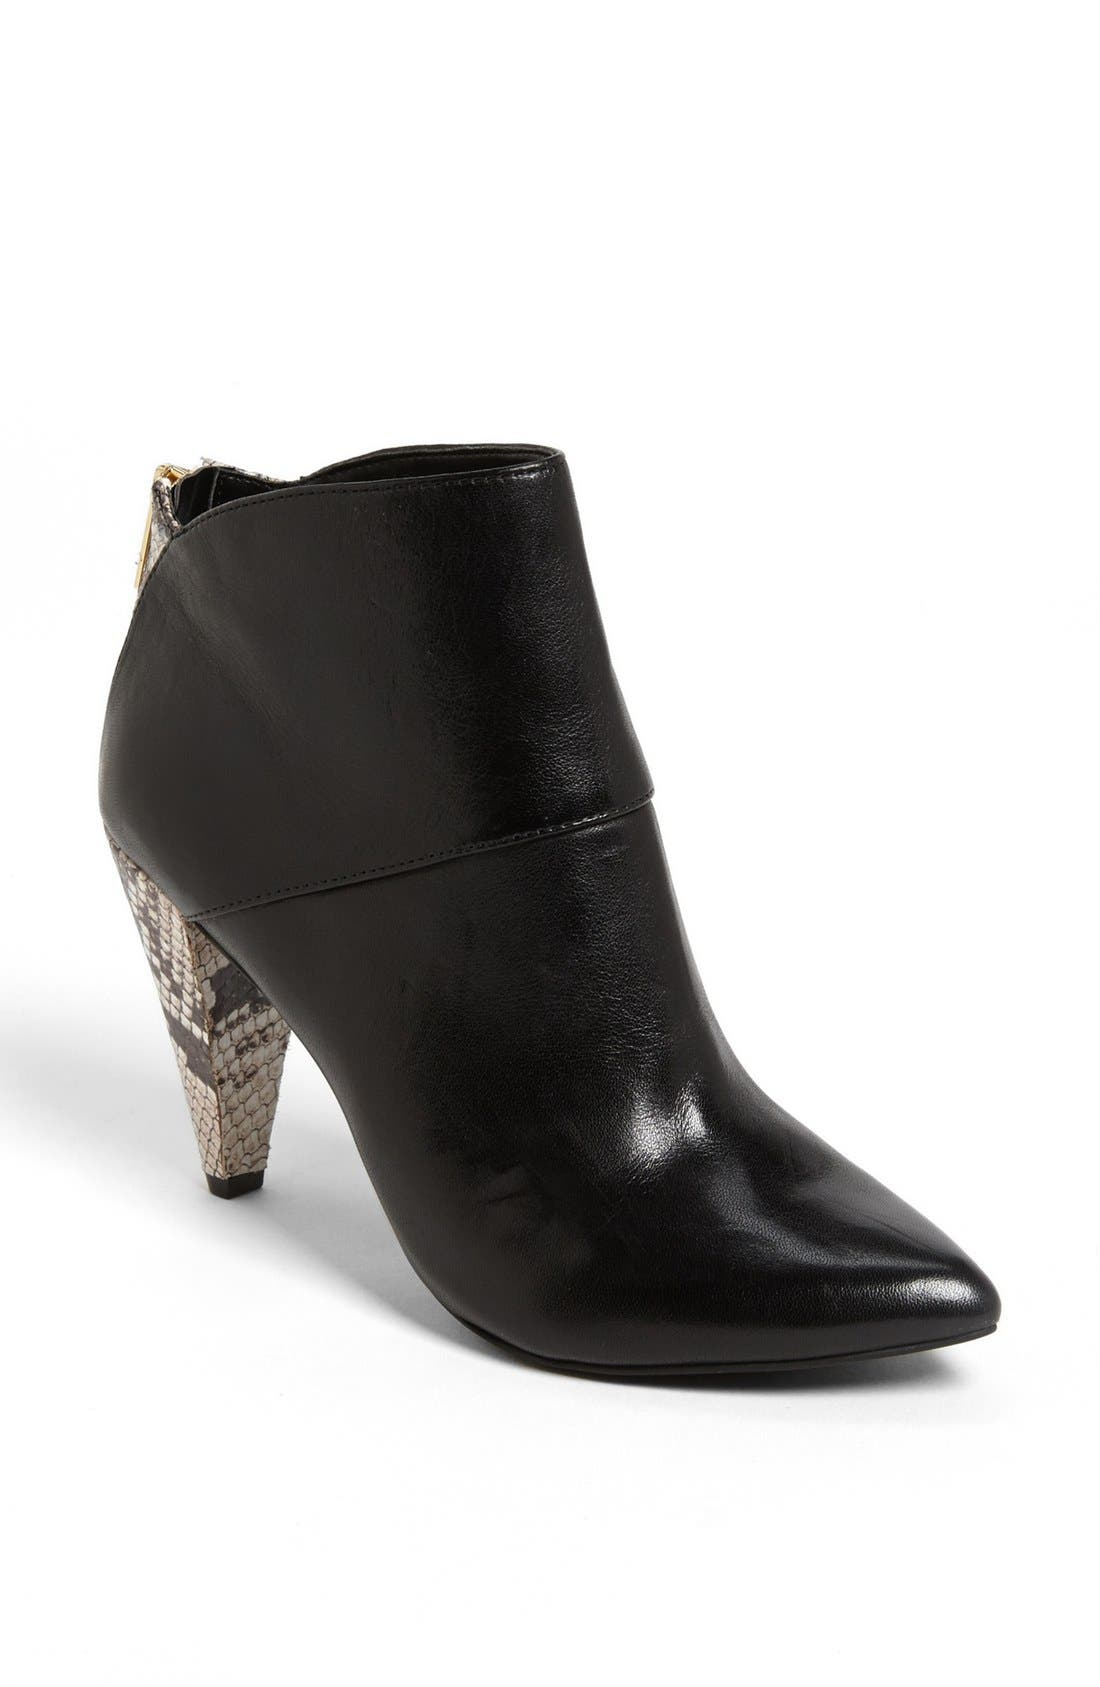 DOLCE VITA 'Harlan' Bootie, Main, color, 001